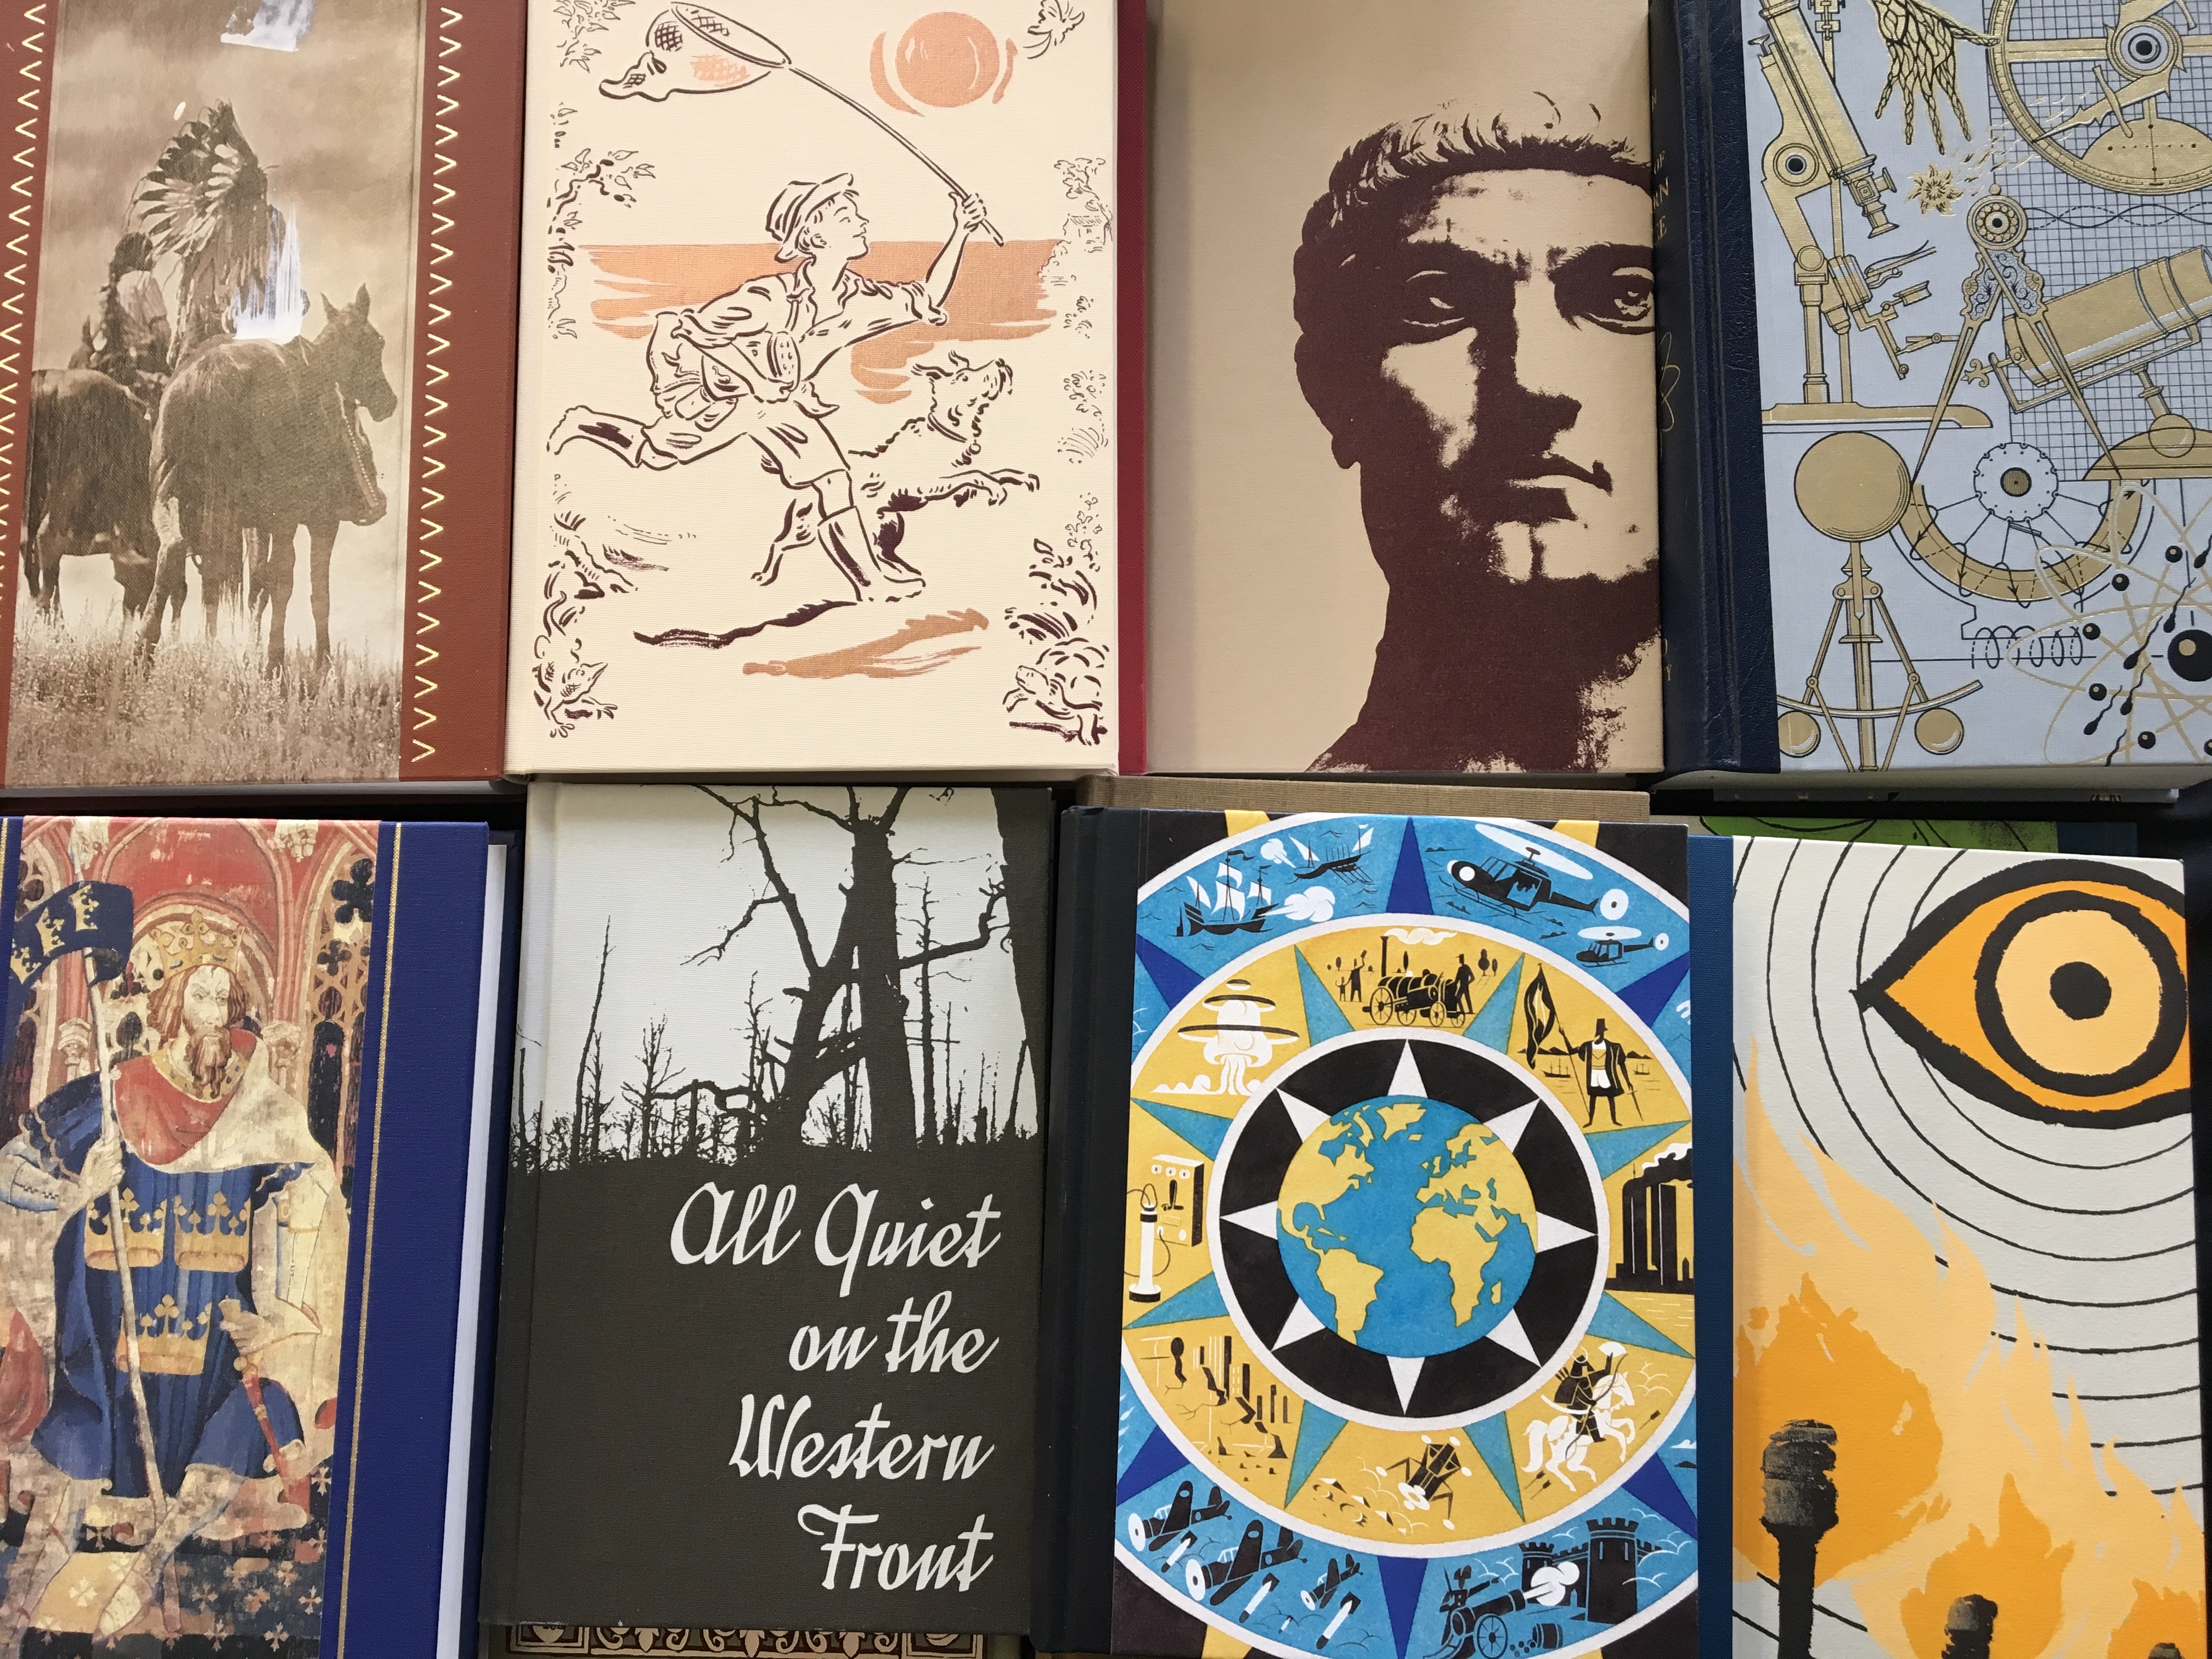 Approx. 30 Folio Society books including history, novels, science, etc. IMPORTANT: Online viewing